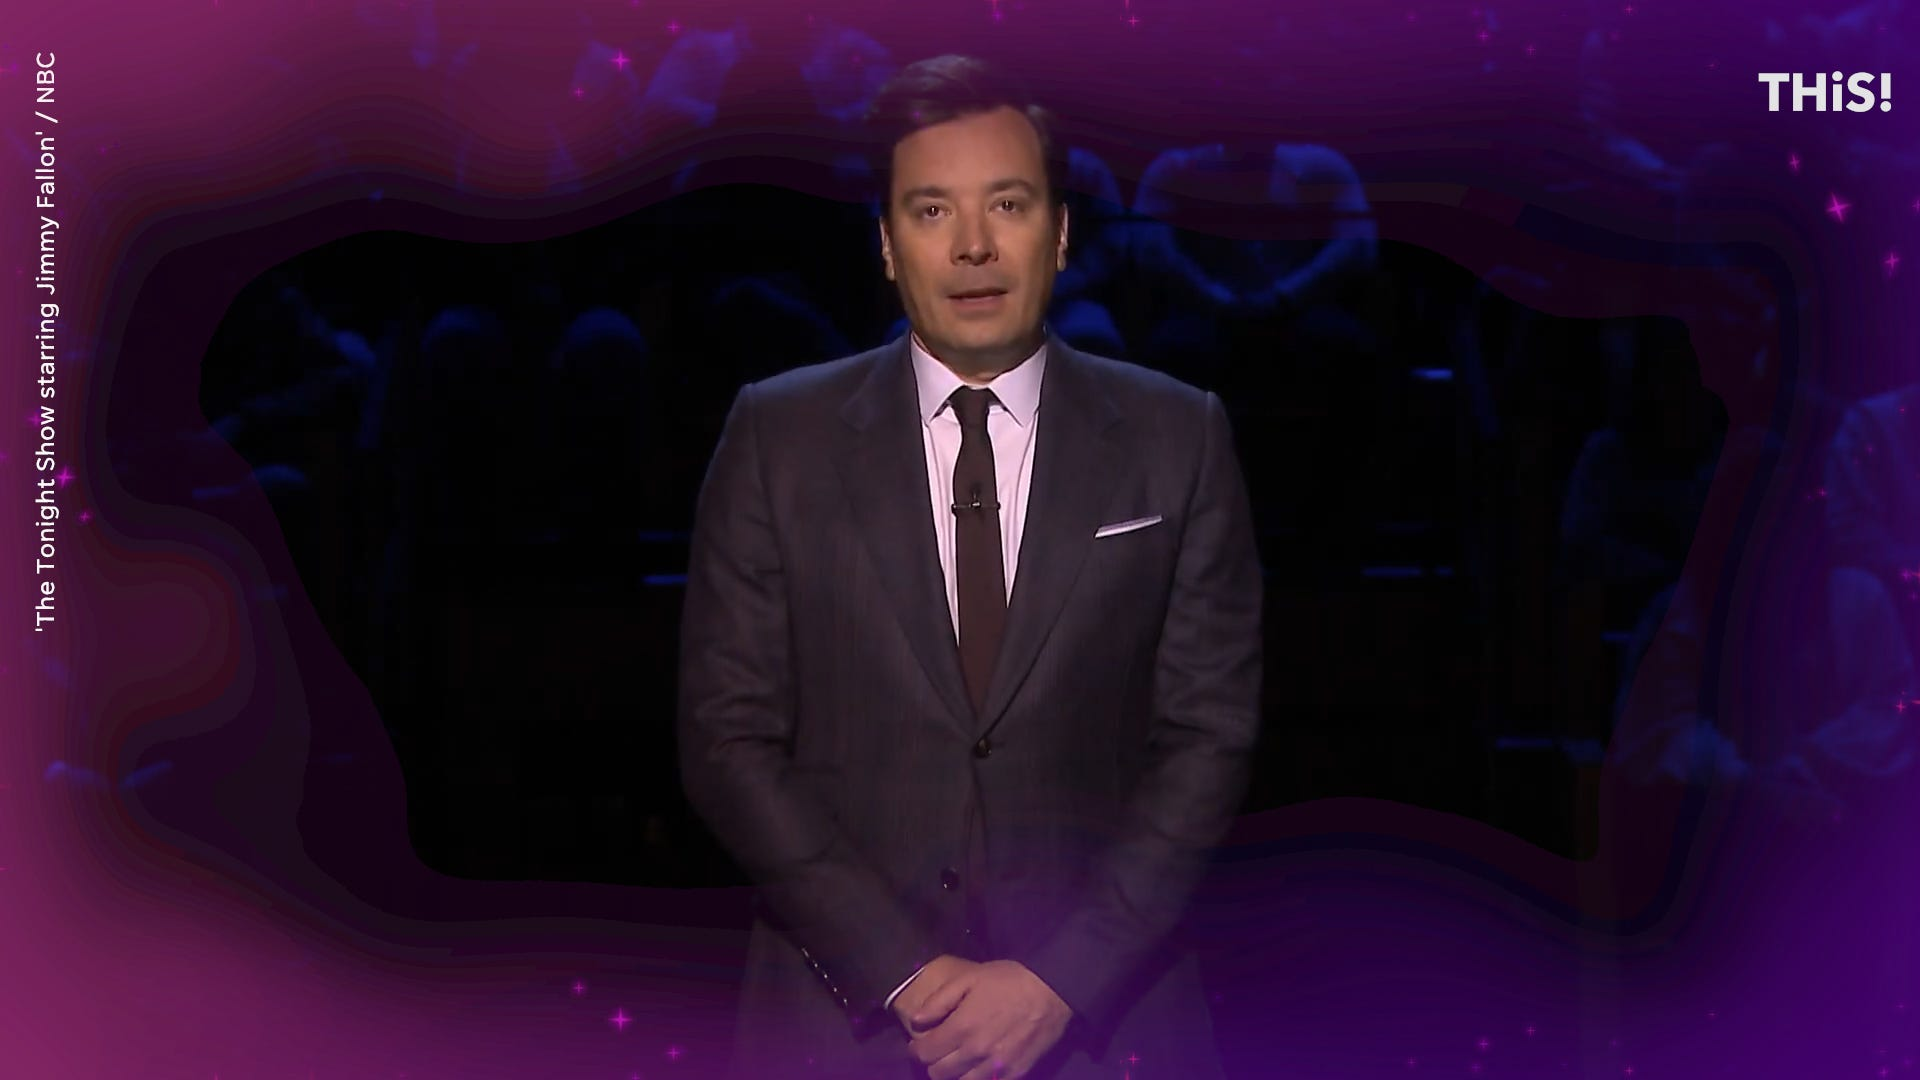 How Jimmy Fallon's 20-year-old 'SNL' blackface skit became news